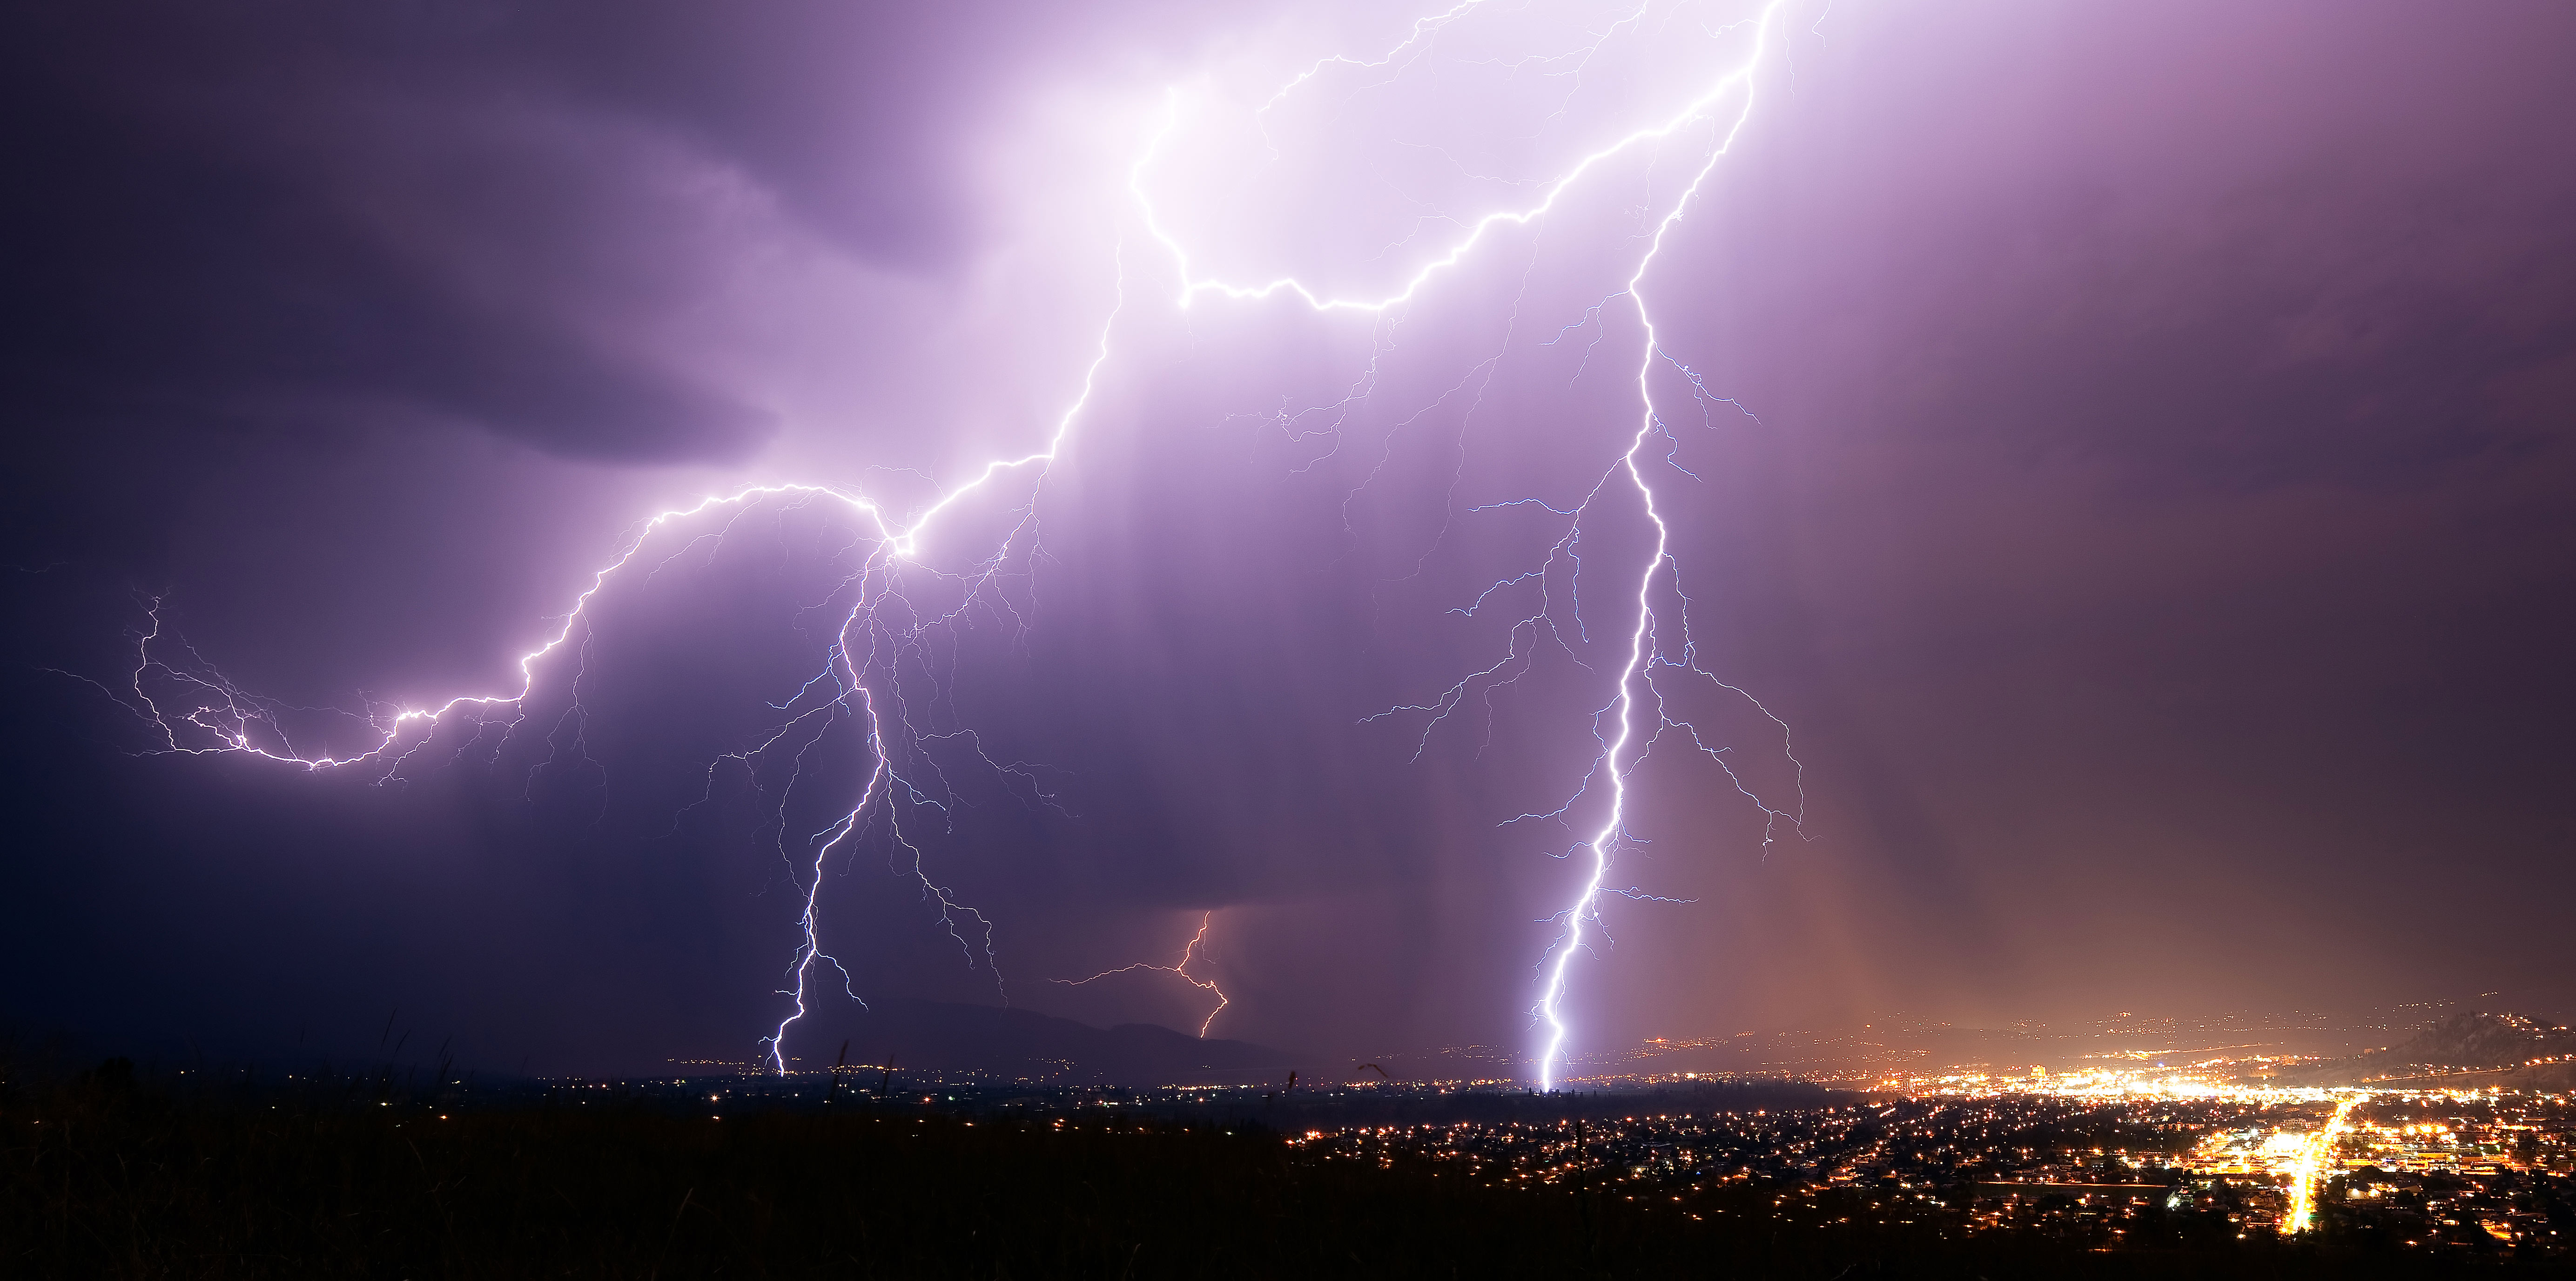 Pin Gallery-stormy-weather on Pinterest